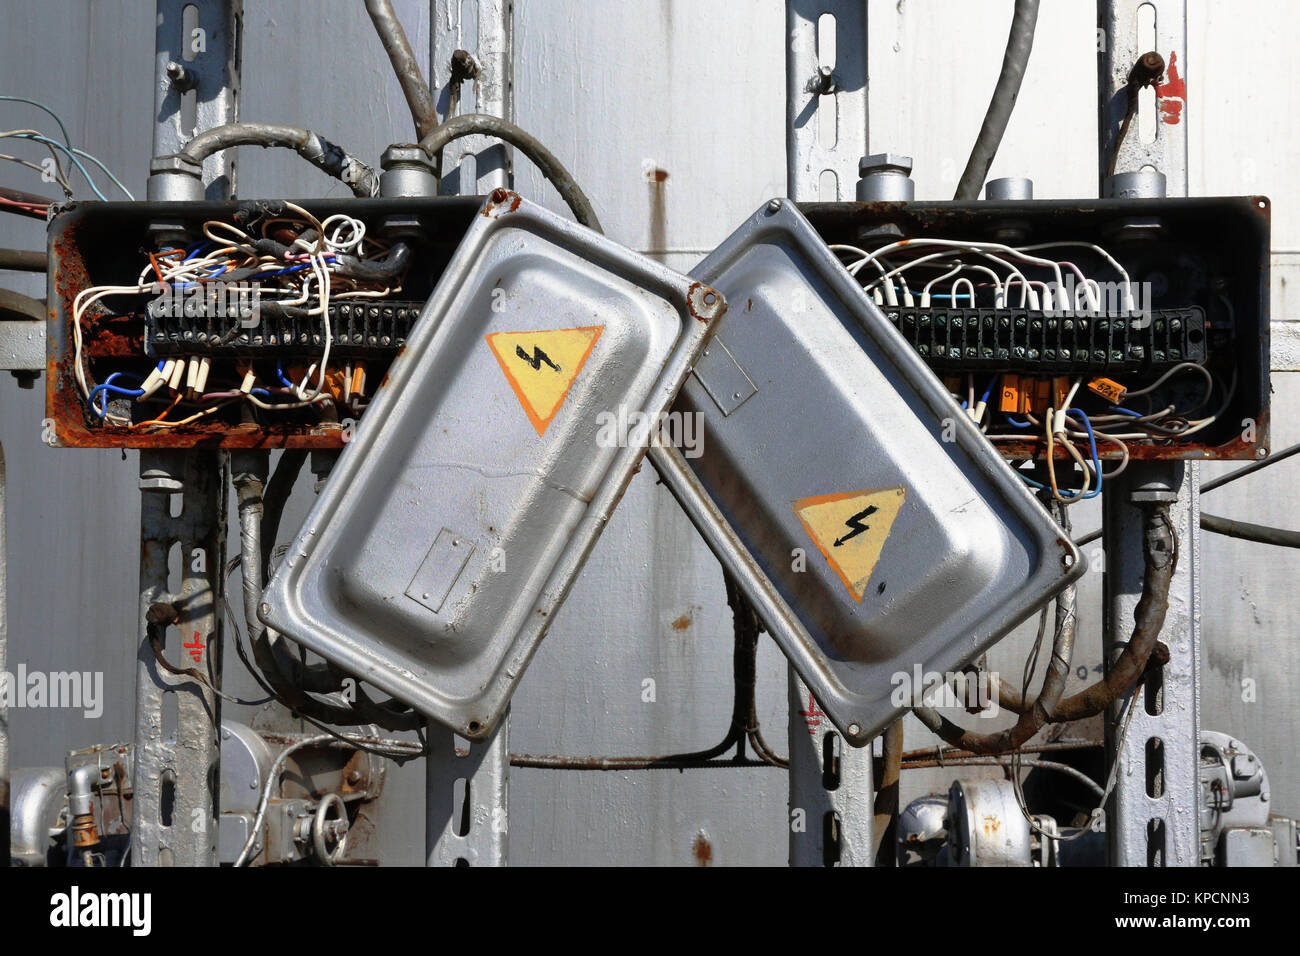 electric fuse box vintage stock photos electric fuse box vintage rh alamy com